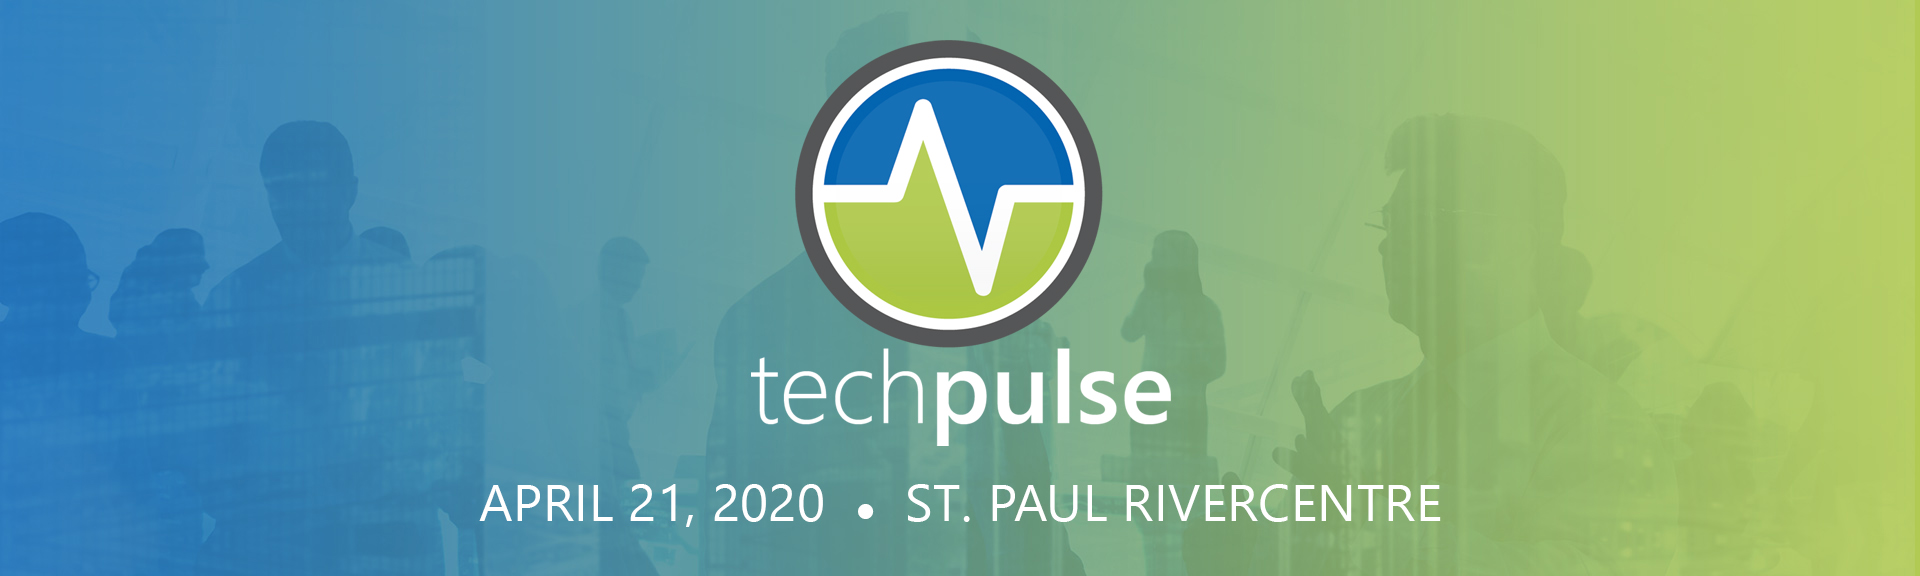 Twin Cities TechPulse 2019